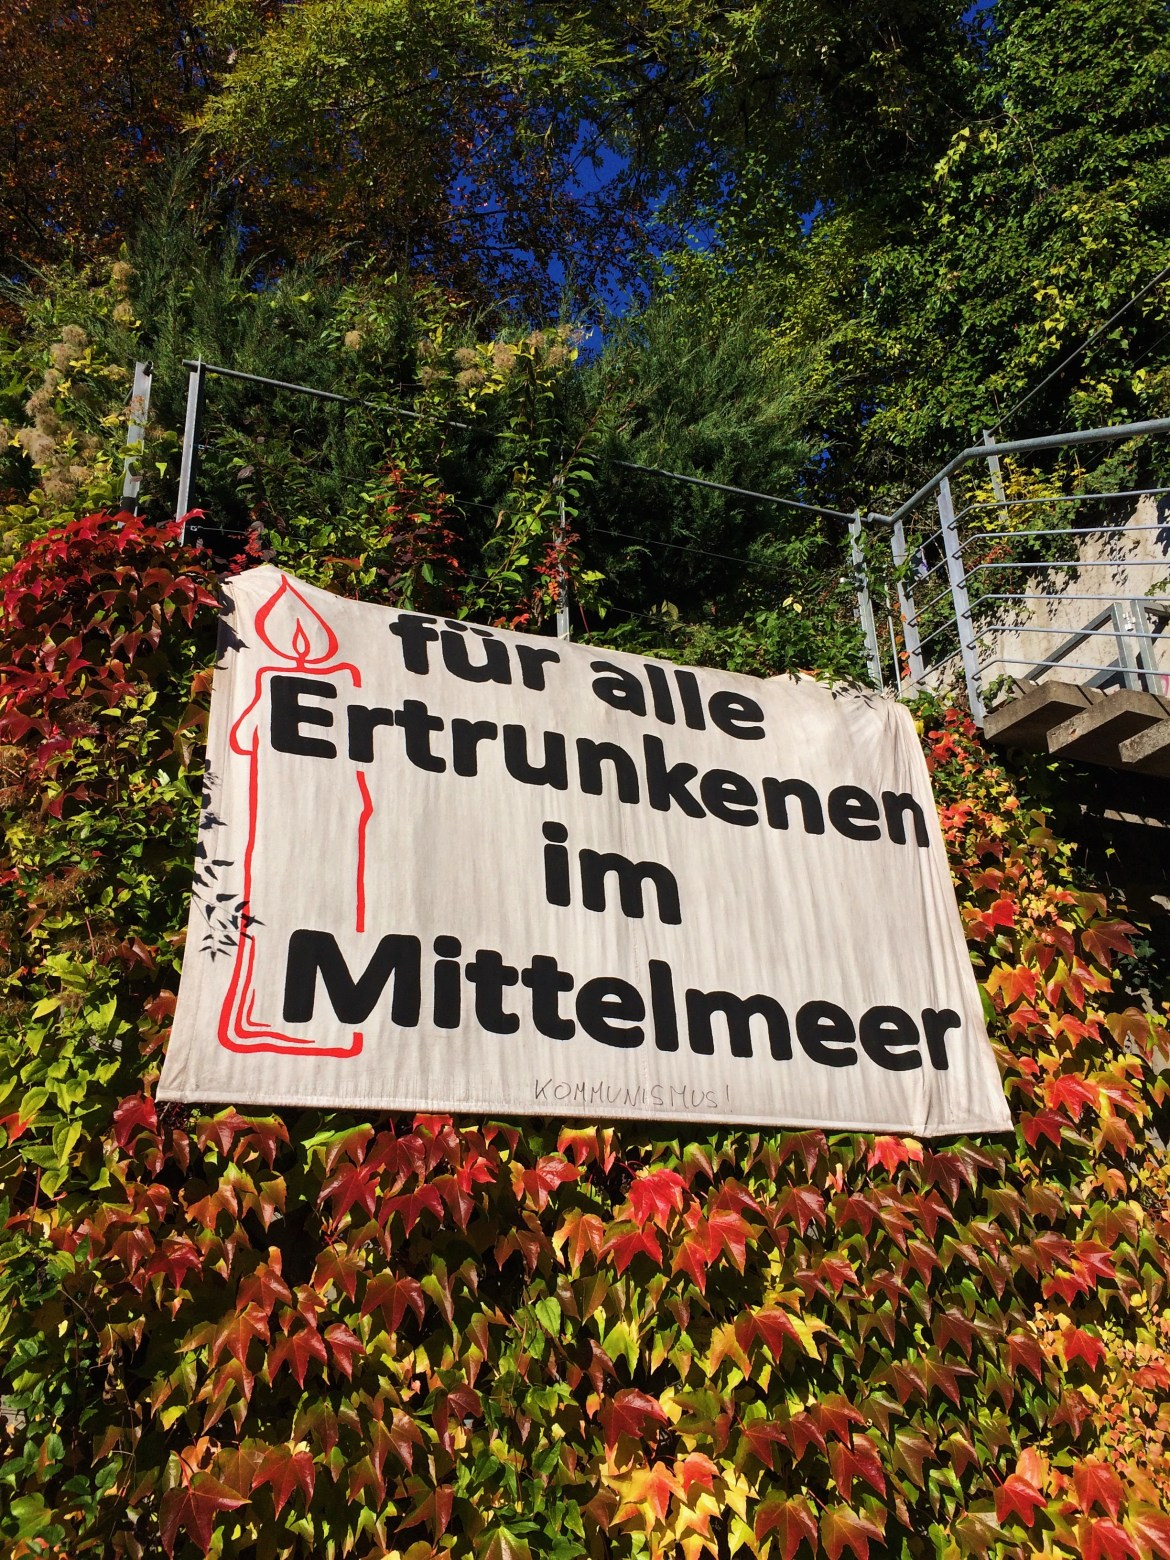 For all who drowned in the Mediterranean, fur-alle-ertrunkenen-im-mittelmeer